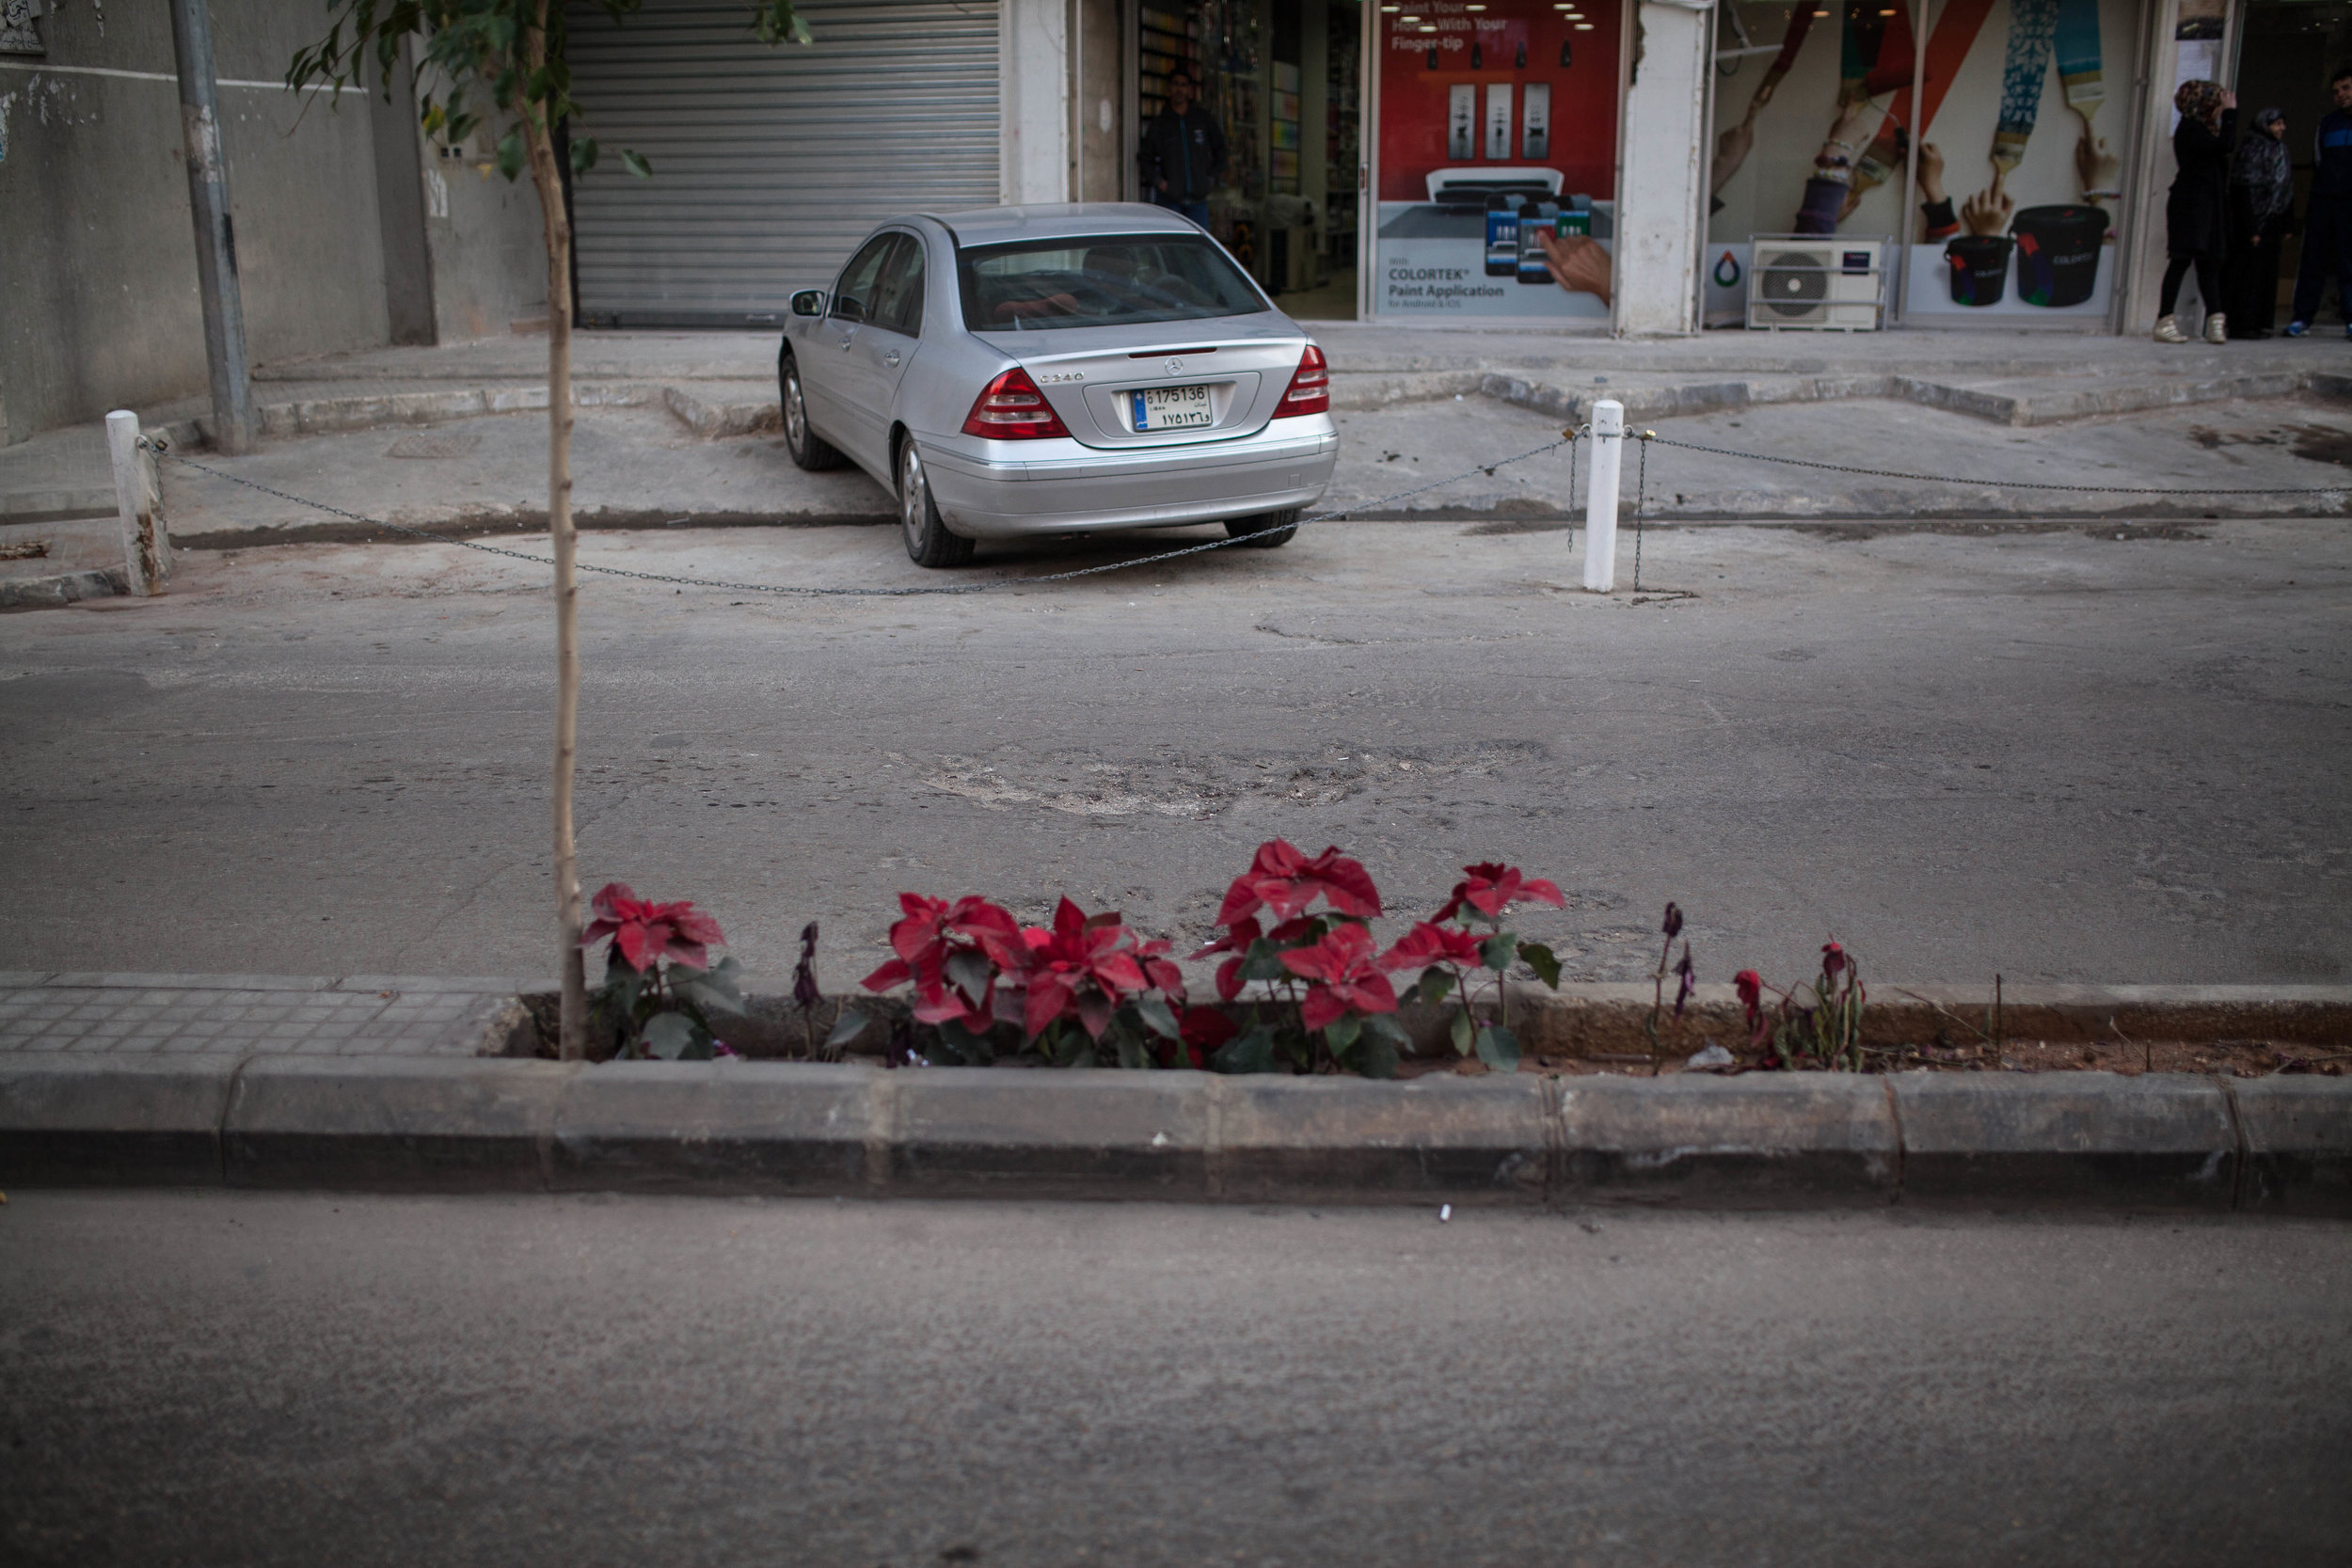 Scarred pavement just days after a car bomb detonation in the southern suburbs of Beirut.